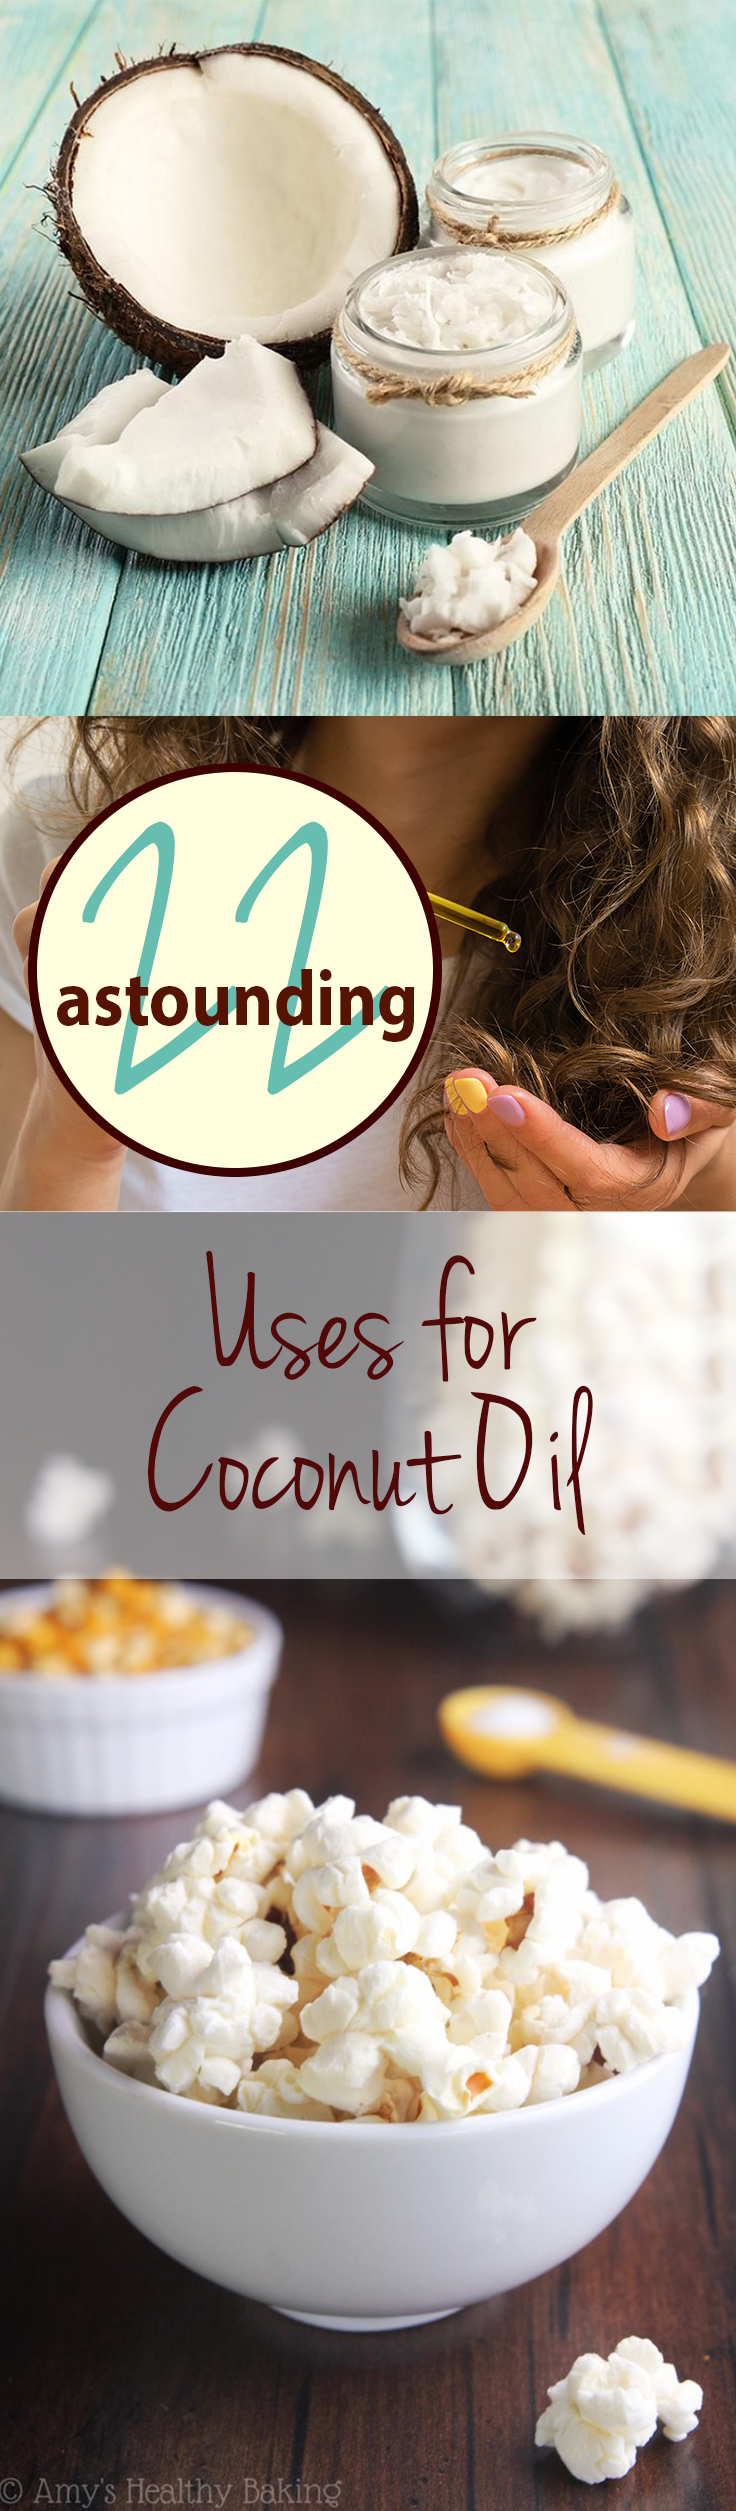 Uses for Coconut Oil, How to Use Coconut Oil, Using Coconut Oil in the Home, How to Use Coconut Oil in the Home, Coconut Oil Hacks, Things to Do with Coconut Oil, Popular Pin